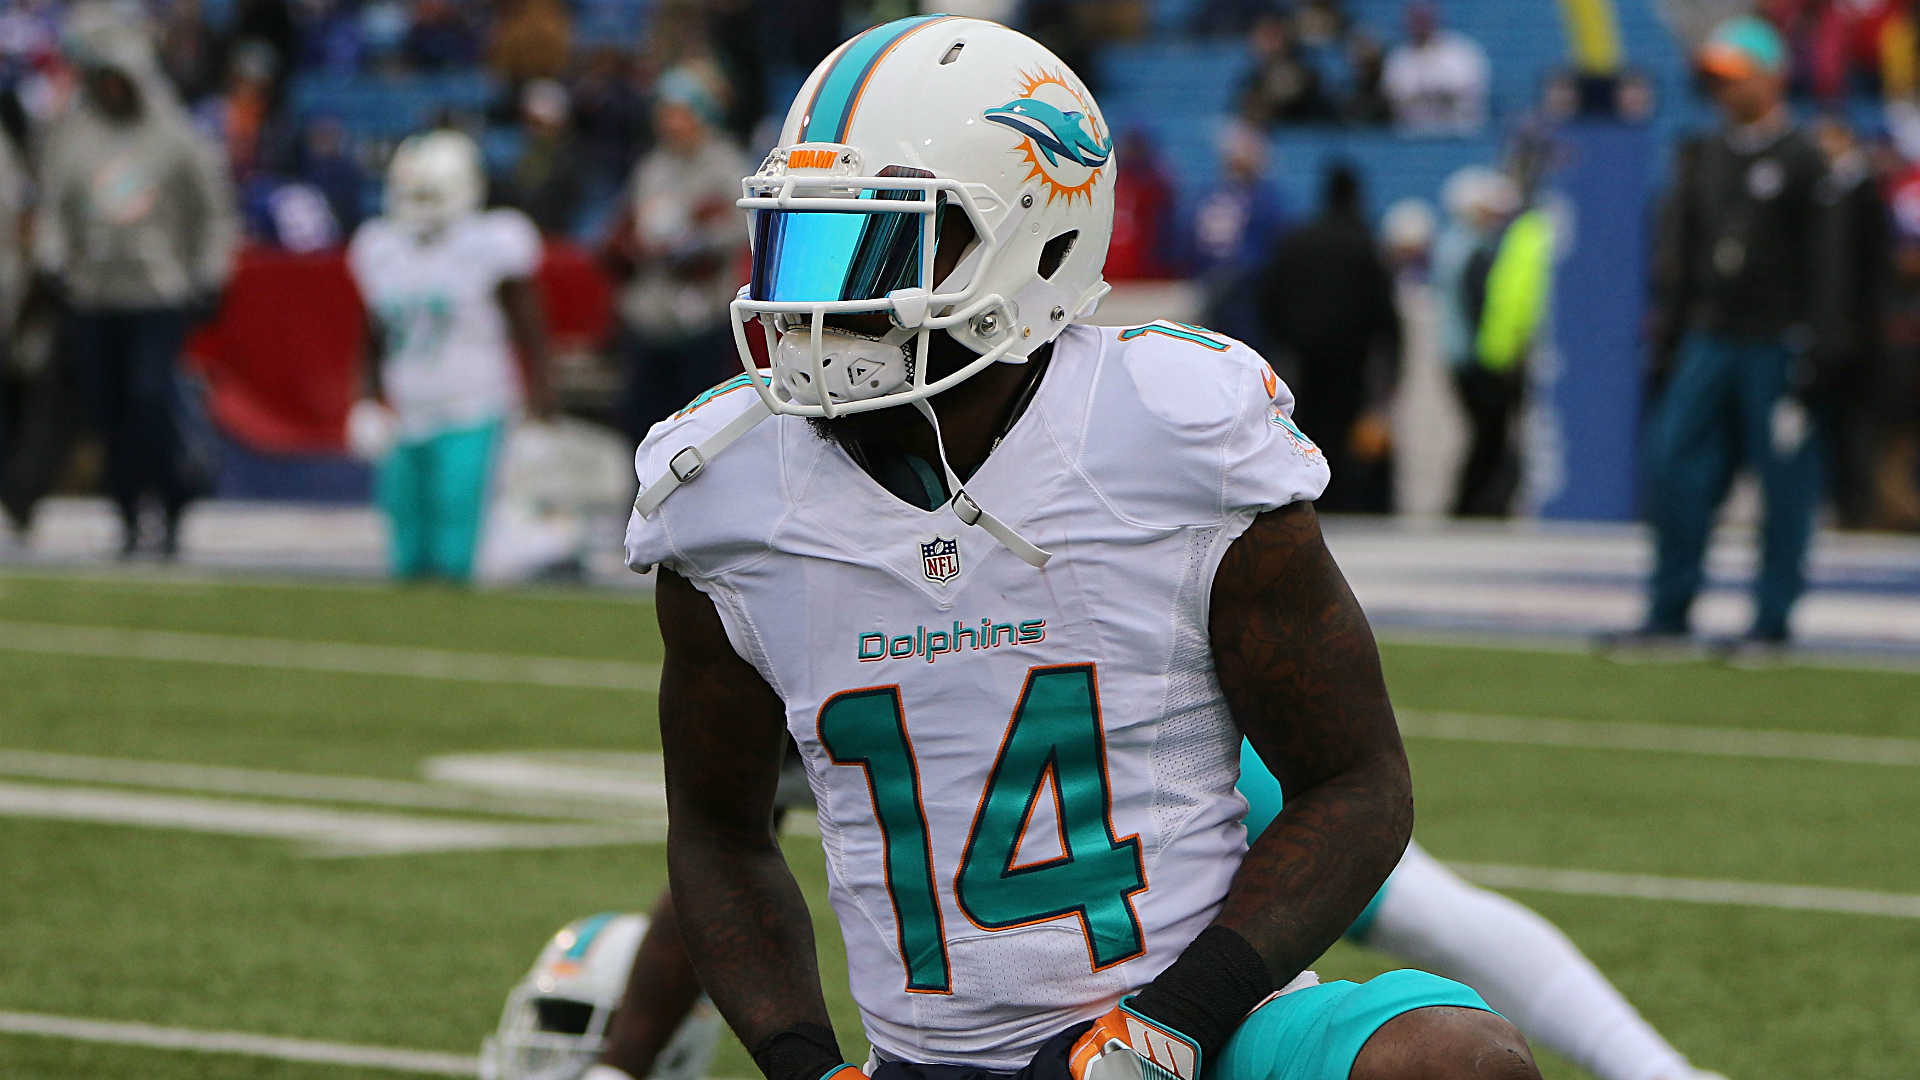 Jarvis Landry being investigated for battery